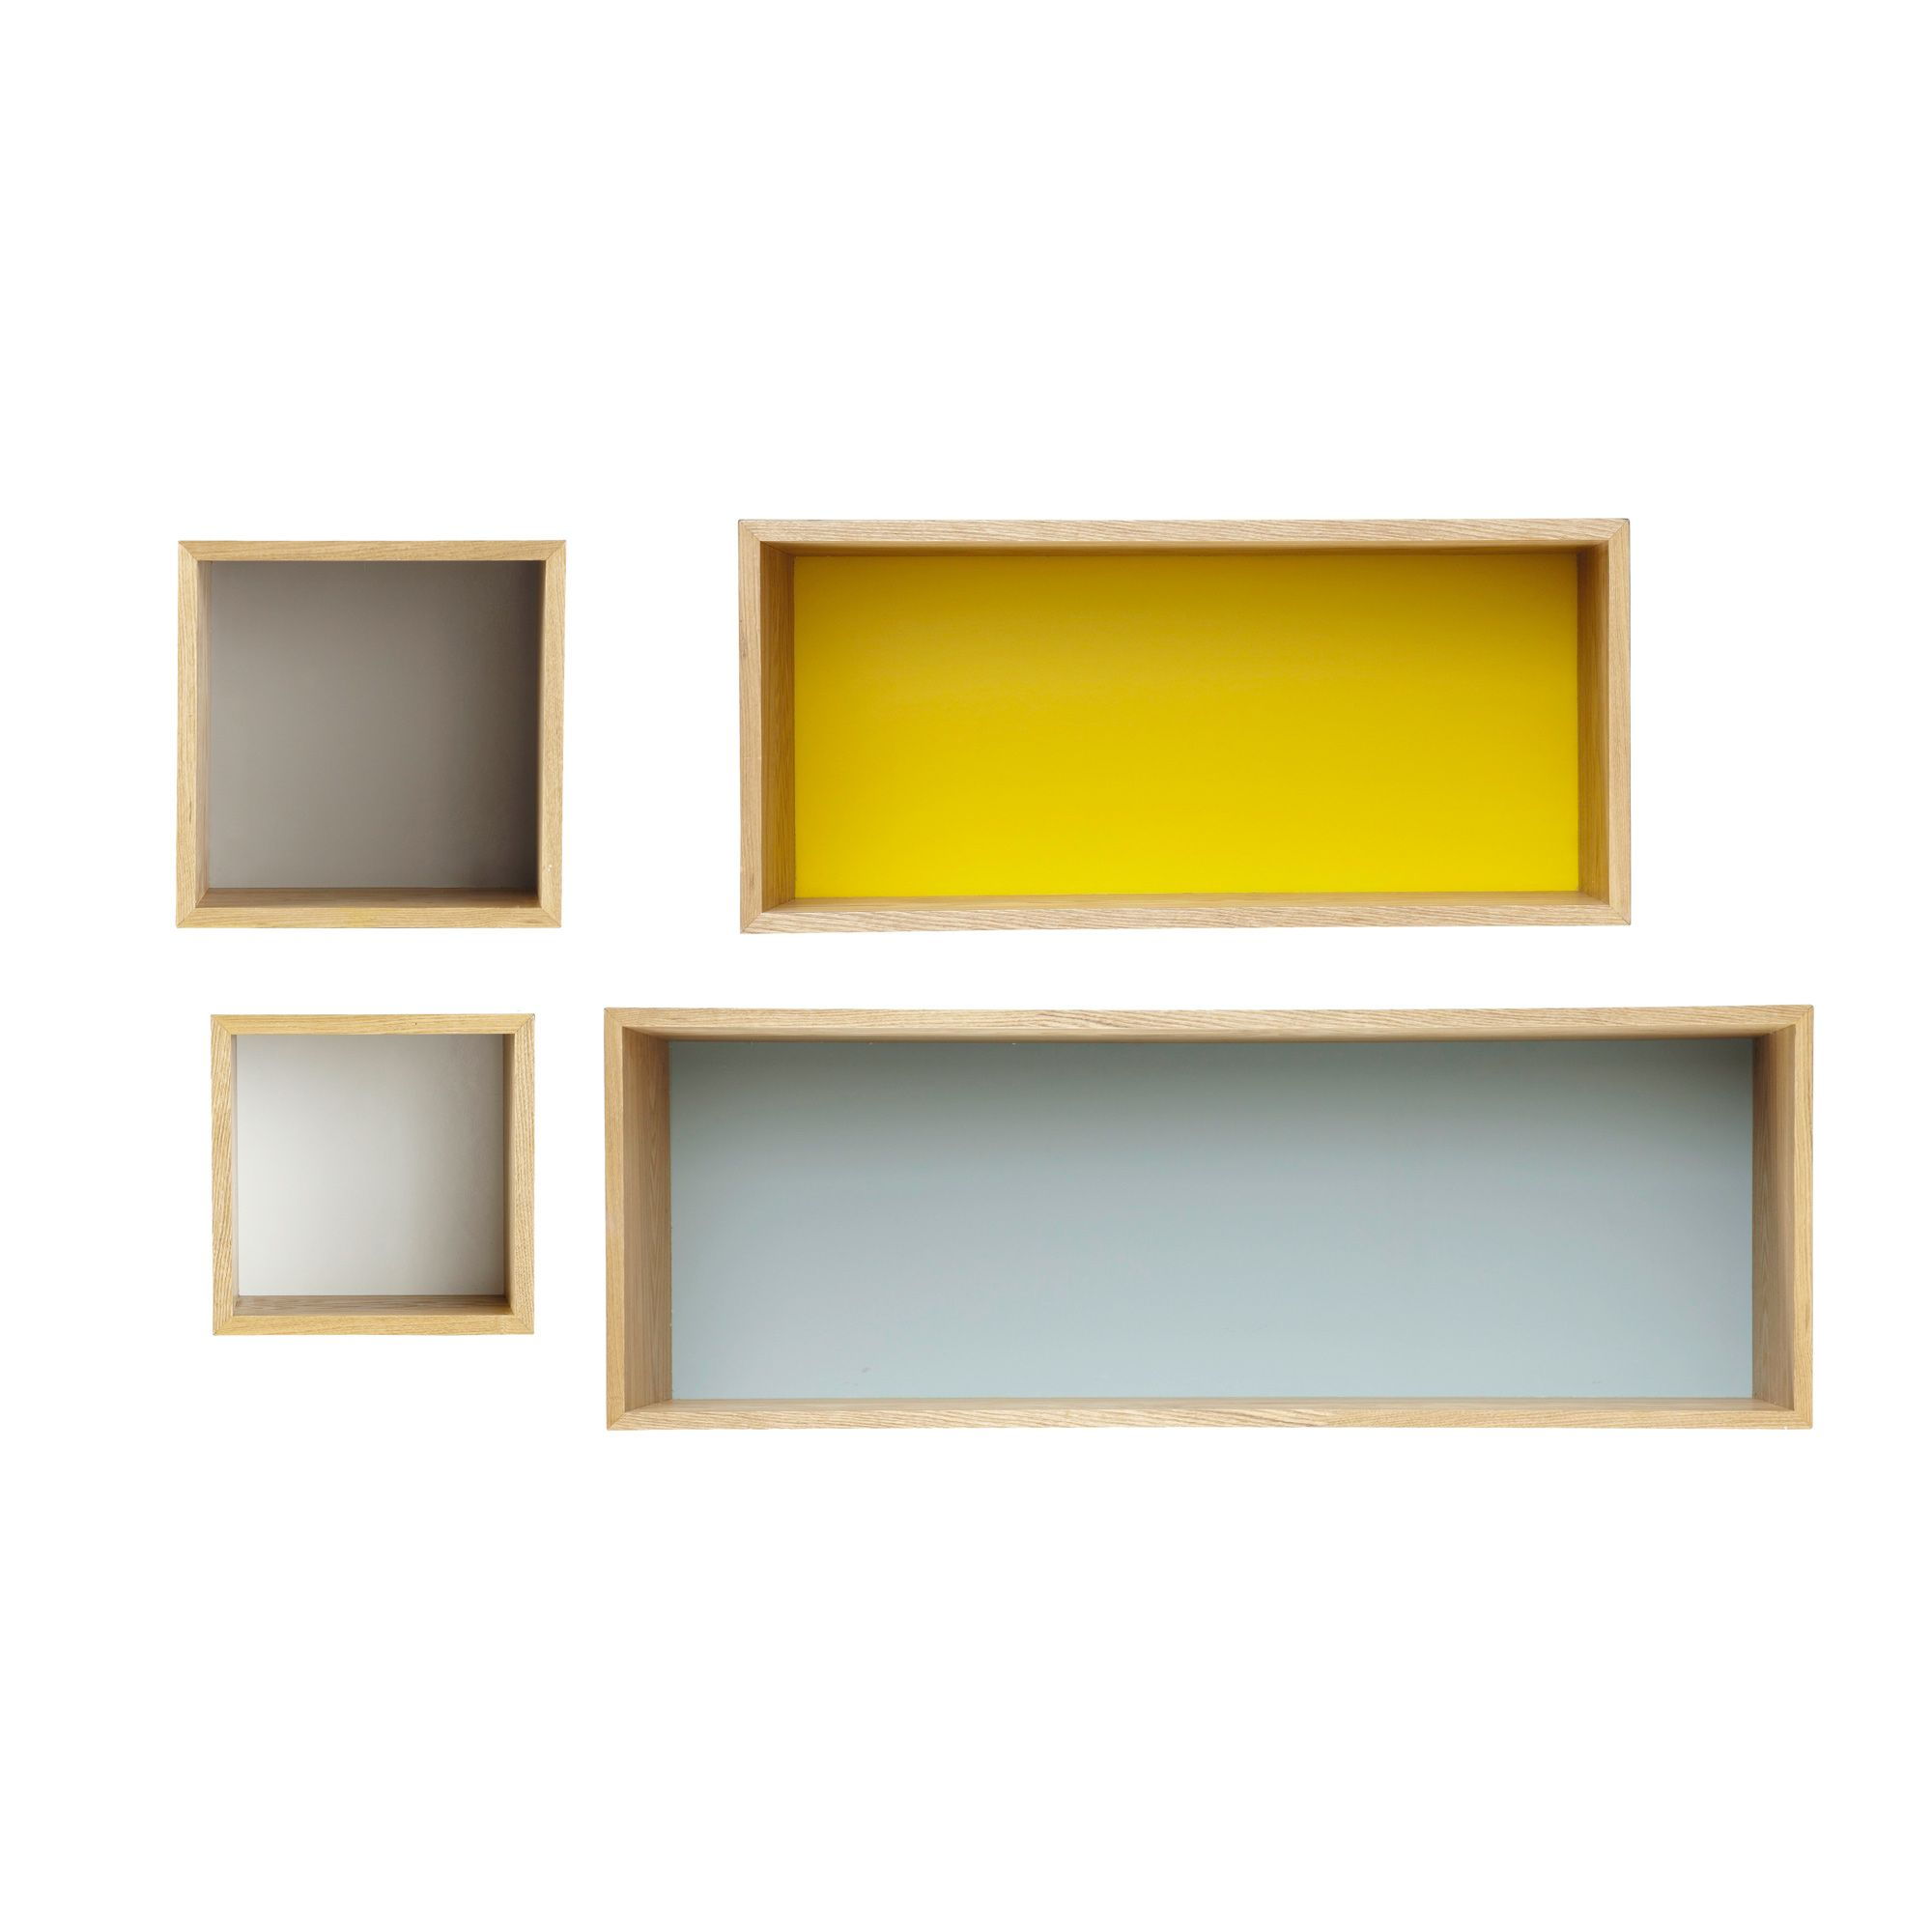 4 étagères murales vintage | Wooden wall shelves, Wooden walls and ...